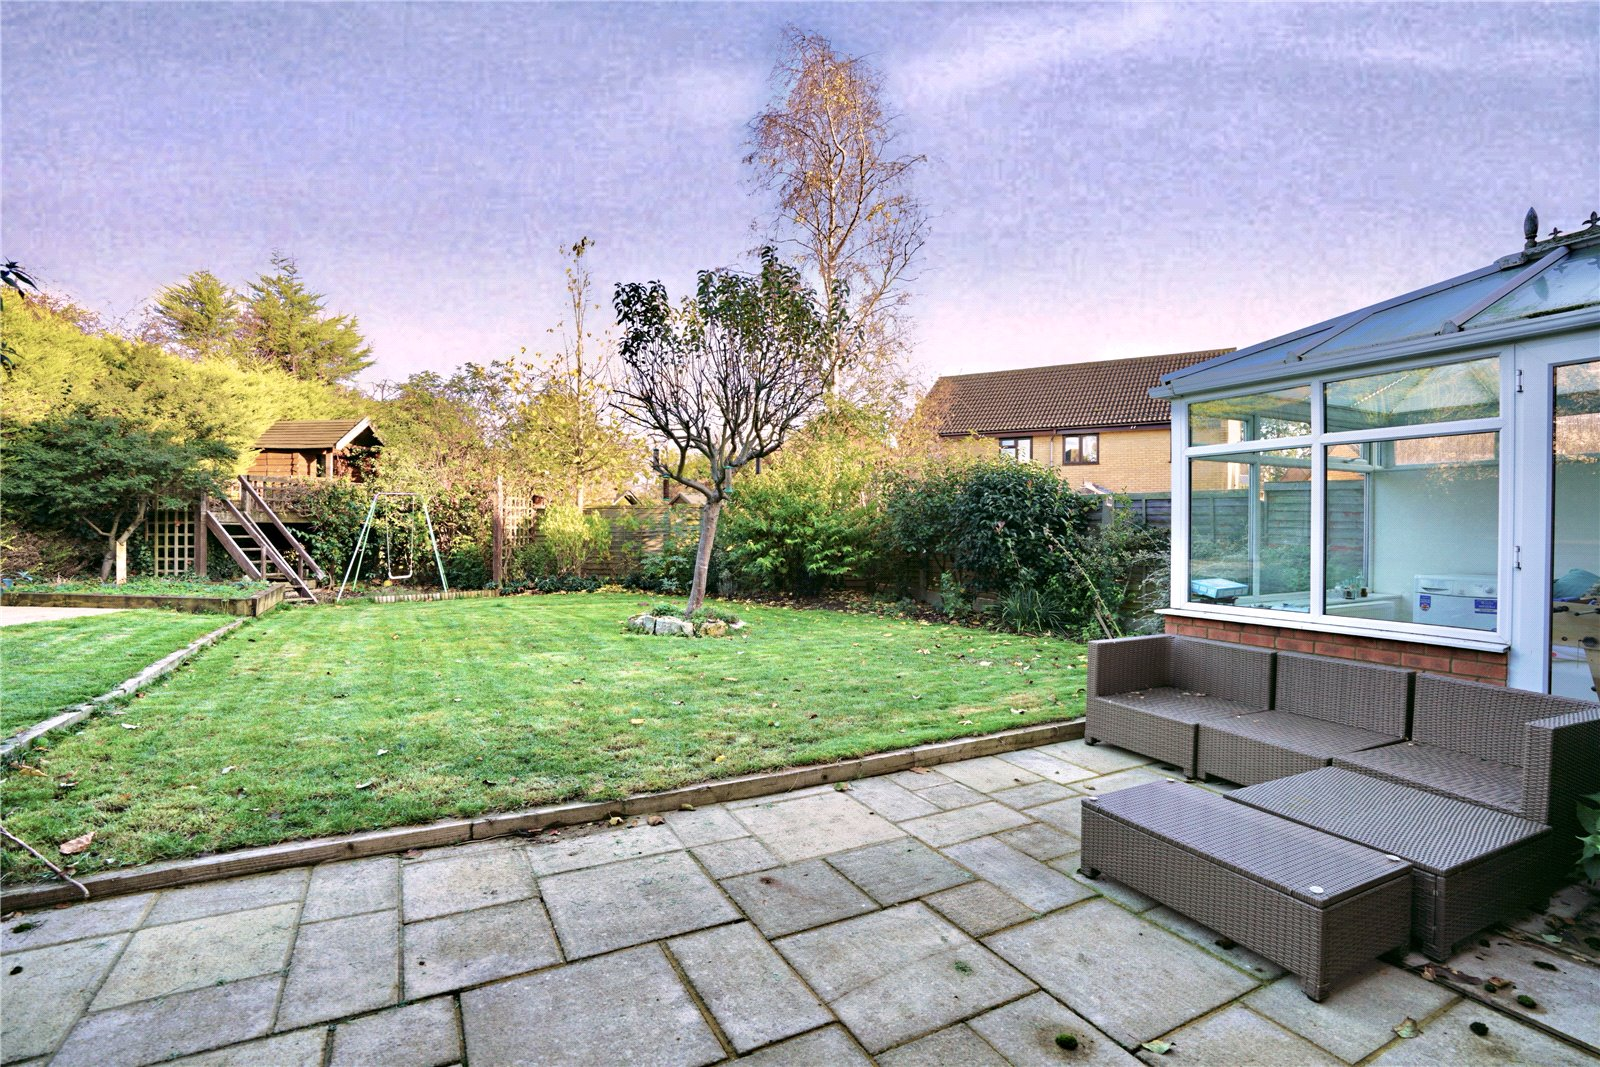 4 bed house for sale in Codrington Court, Eaton Socon  - Property Image 8